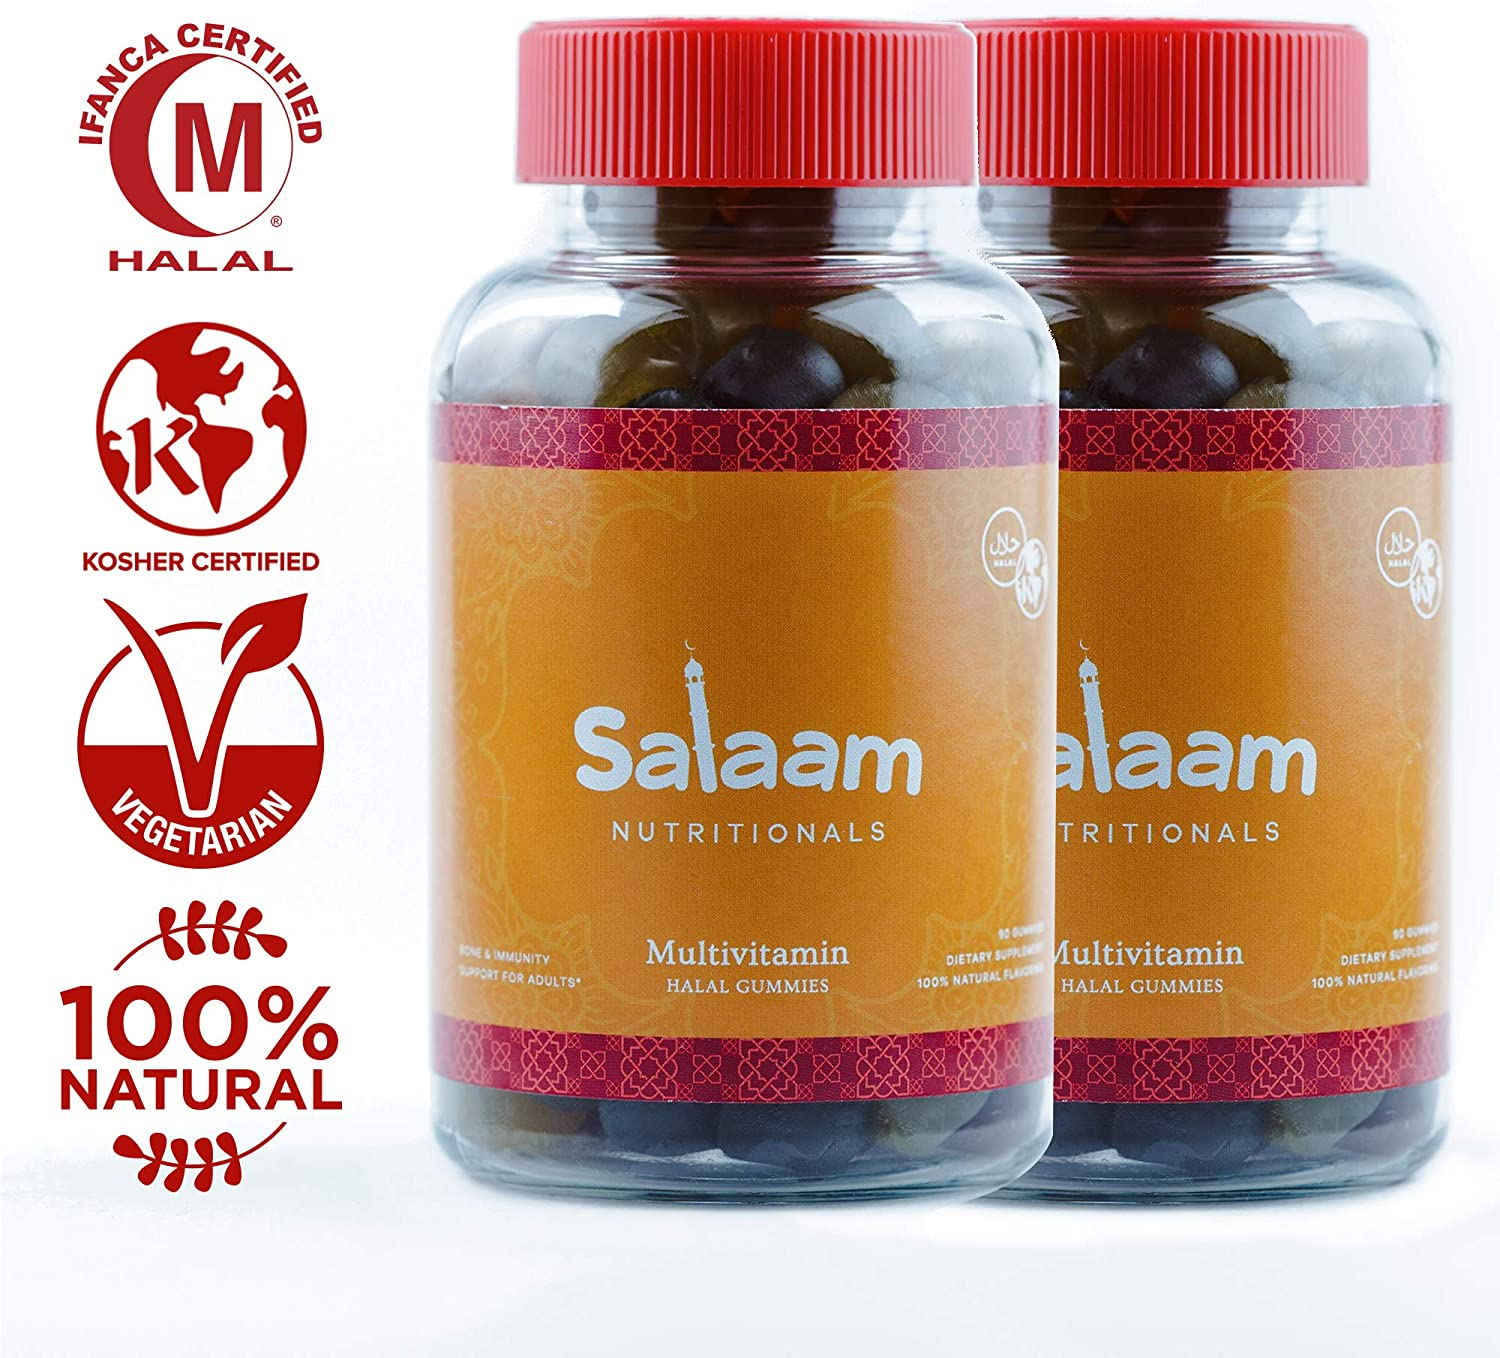 Salaam Nutritionals Halal Adult Gummy Multivitamins 11 Essential Vitamins and Minerals with Antioxidants Kosher, Vegetarian, Non-GMO, Gluten, Dairy, Nut Free 2 Pack, 180 Total Count